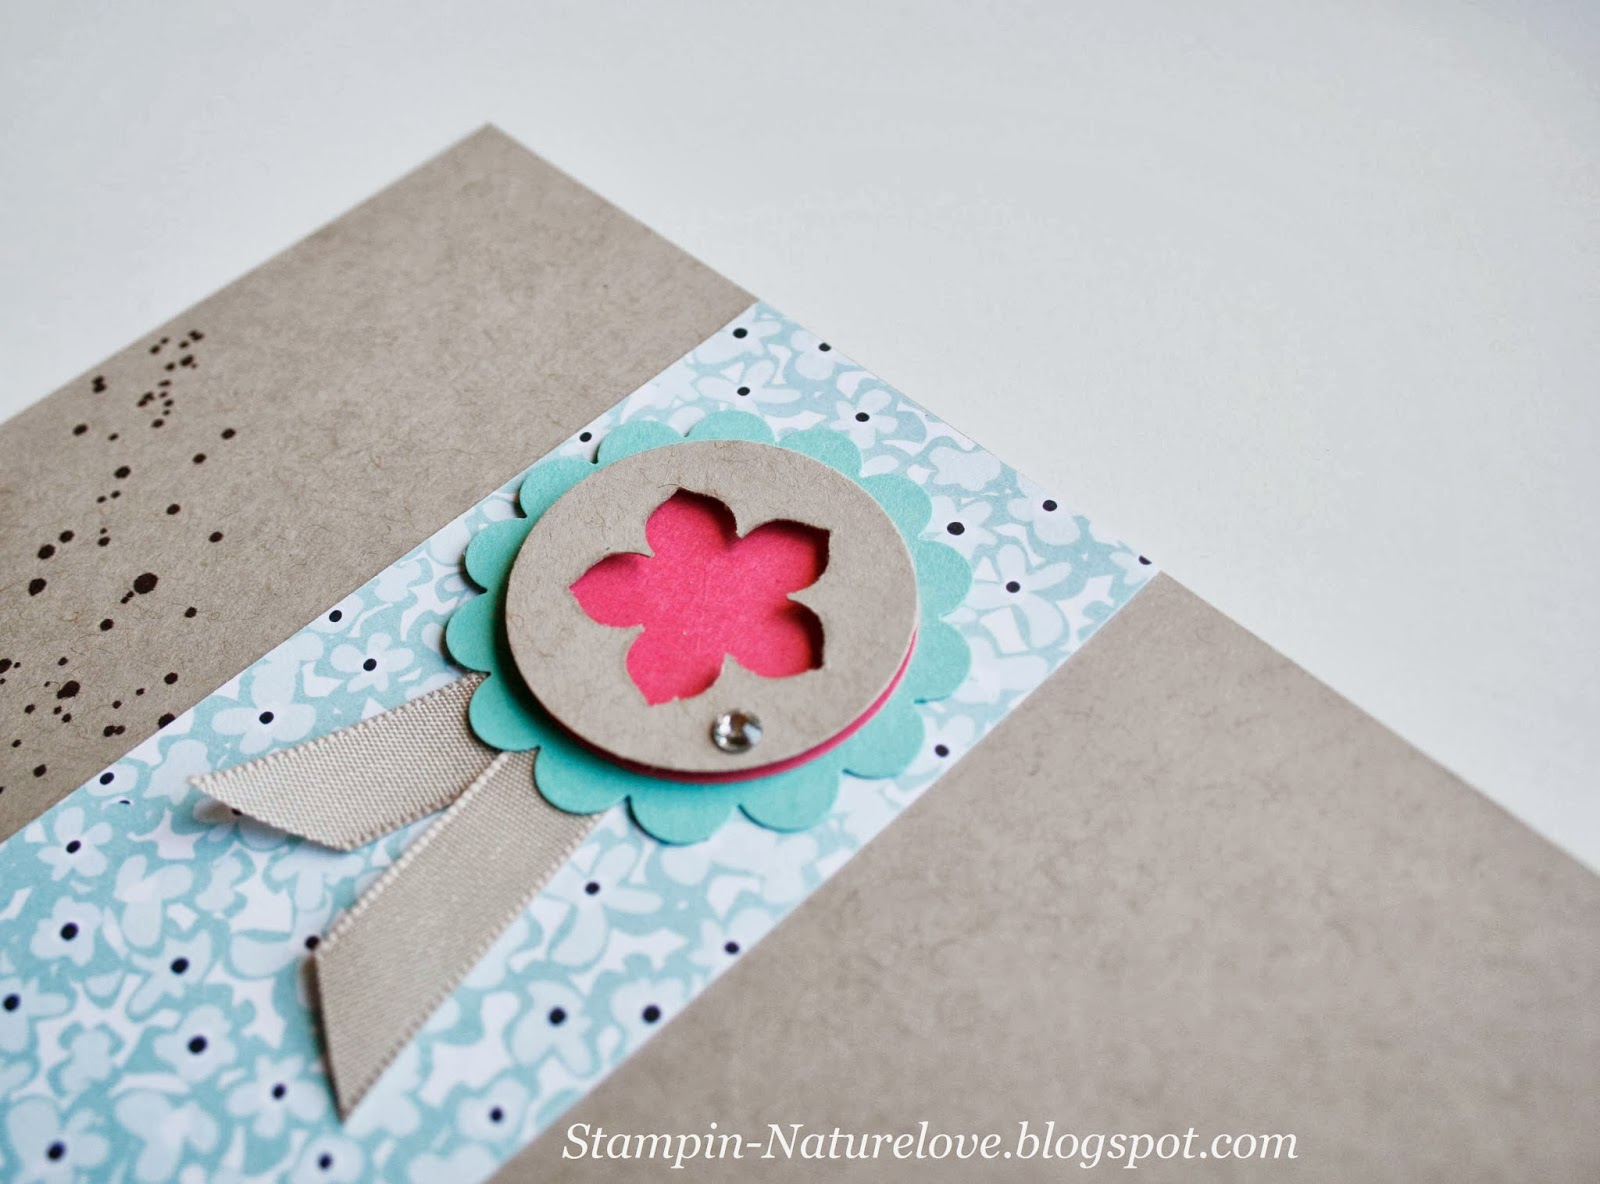 Sale a bration Stampin up